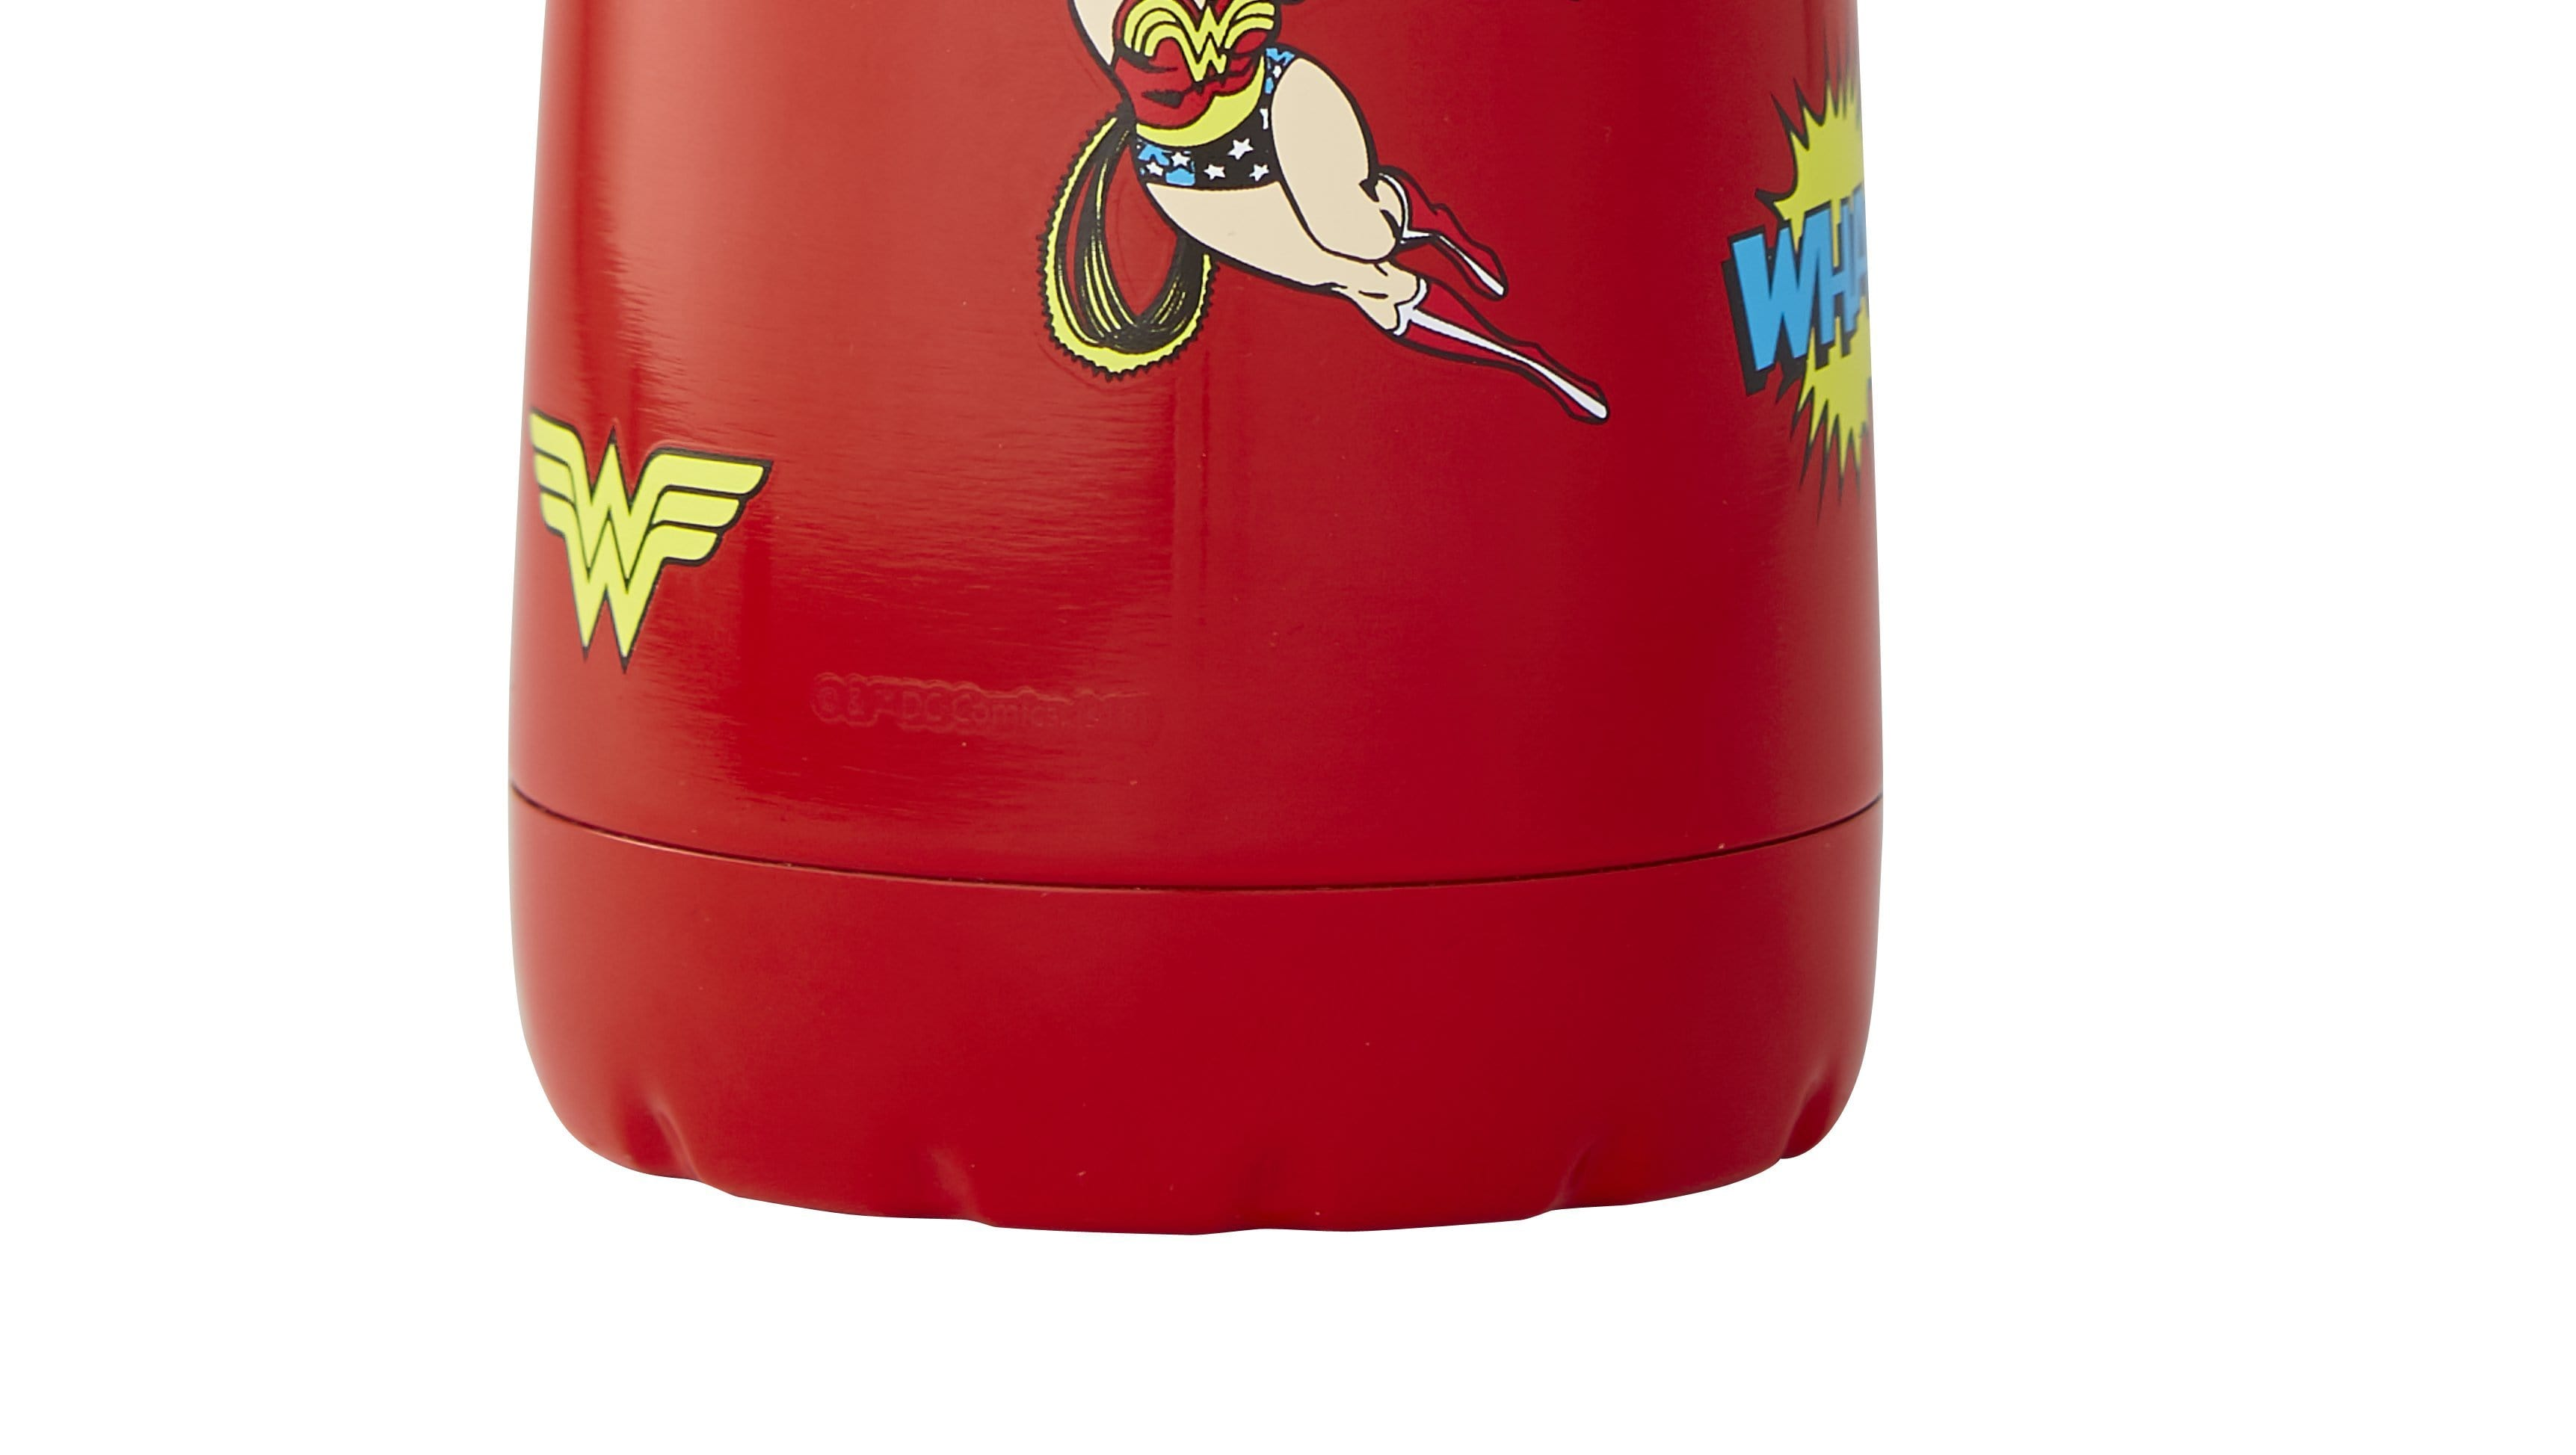 Sip by Swell 15oz/450ml DC Comics - Wonder Woman - Amazon Warrior termosz